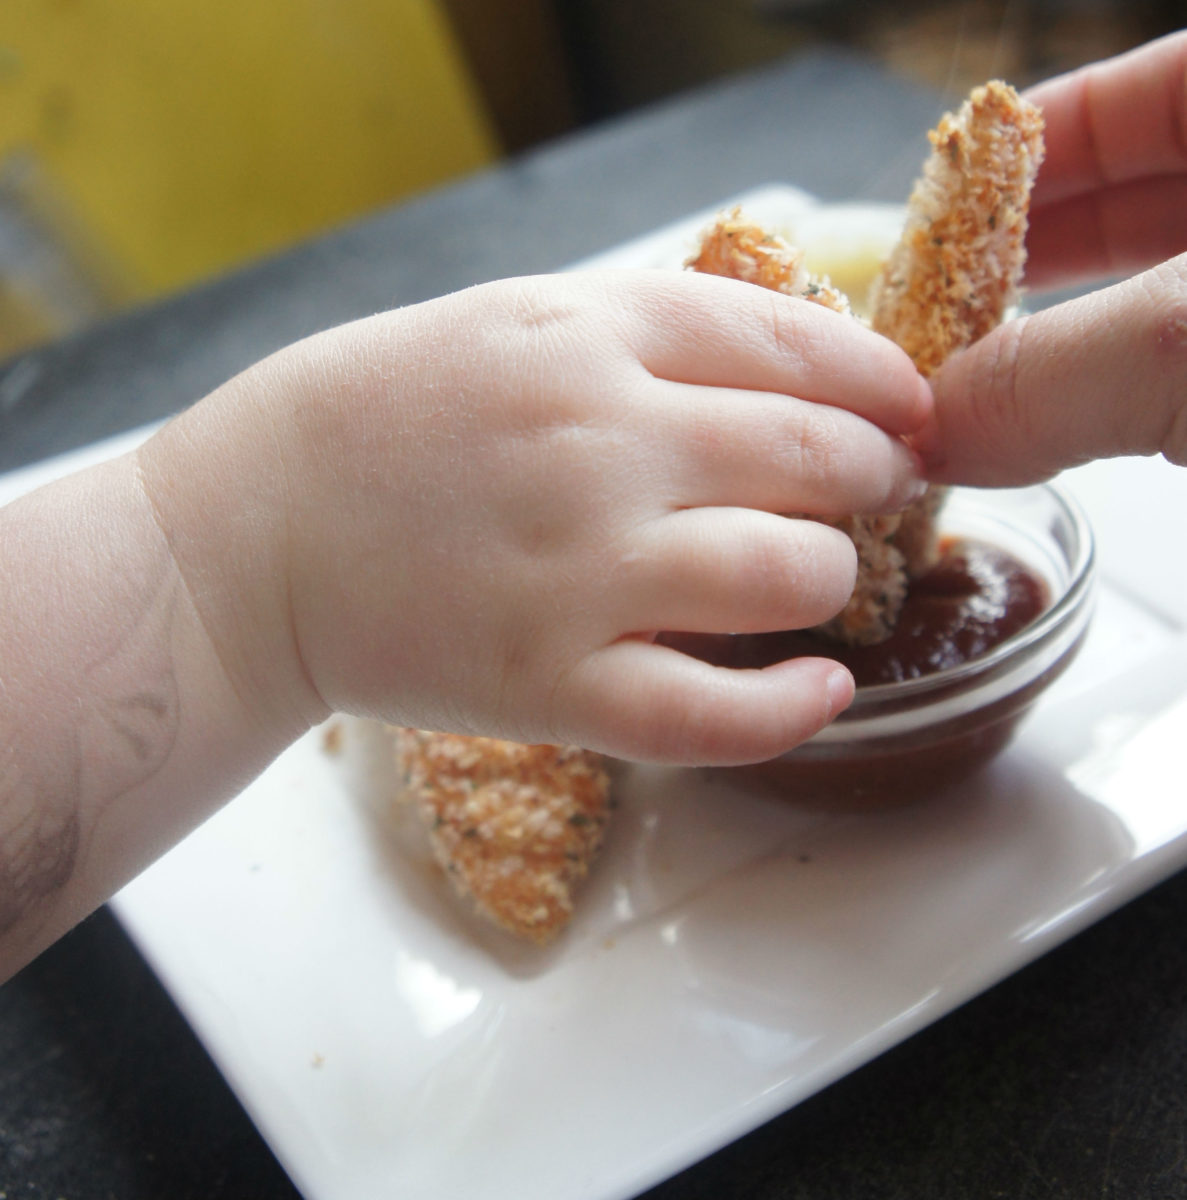 baked chicken fingers dipping